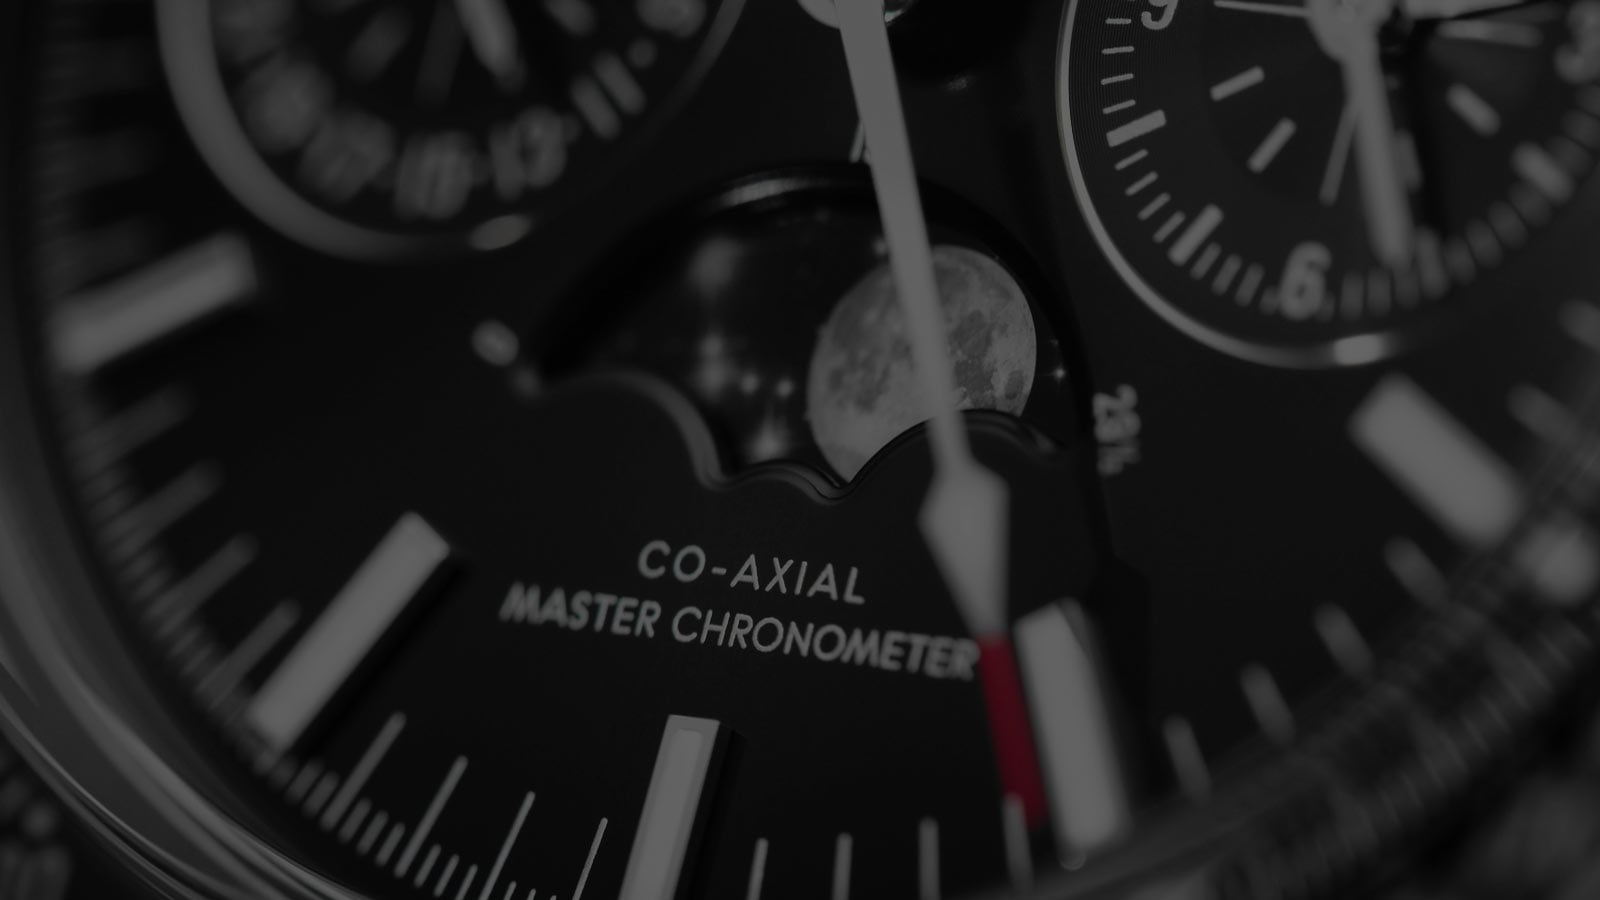 Blurred close-up view of an Omega Moonwatch Moonphase with a black dial